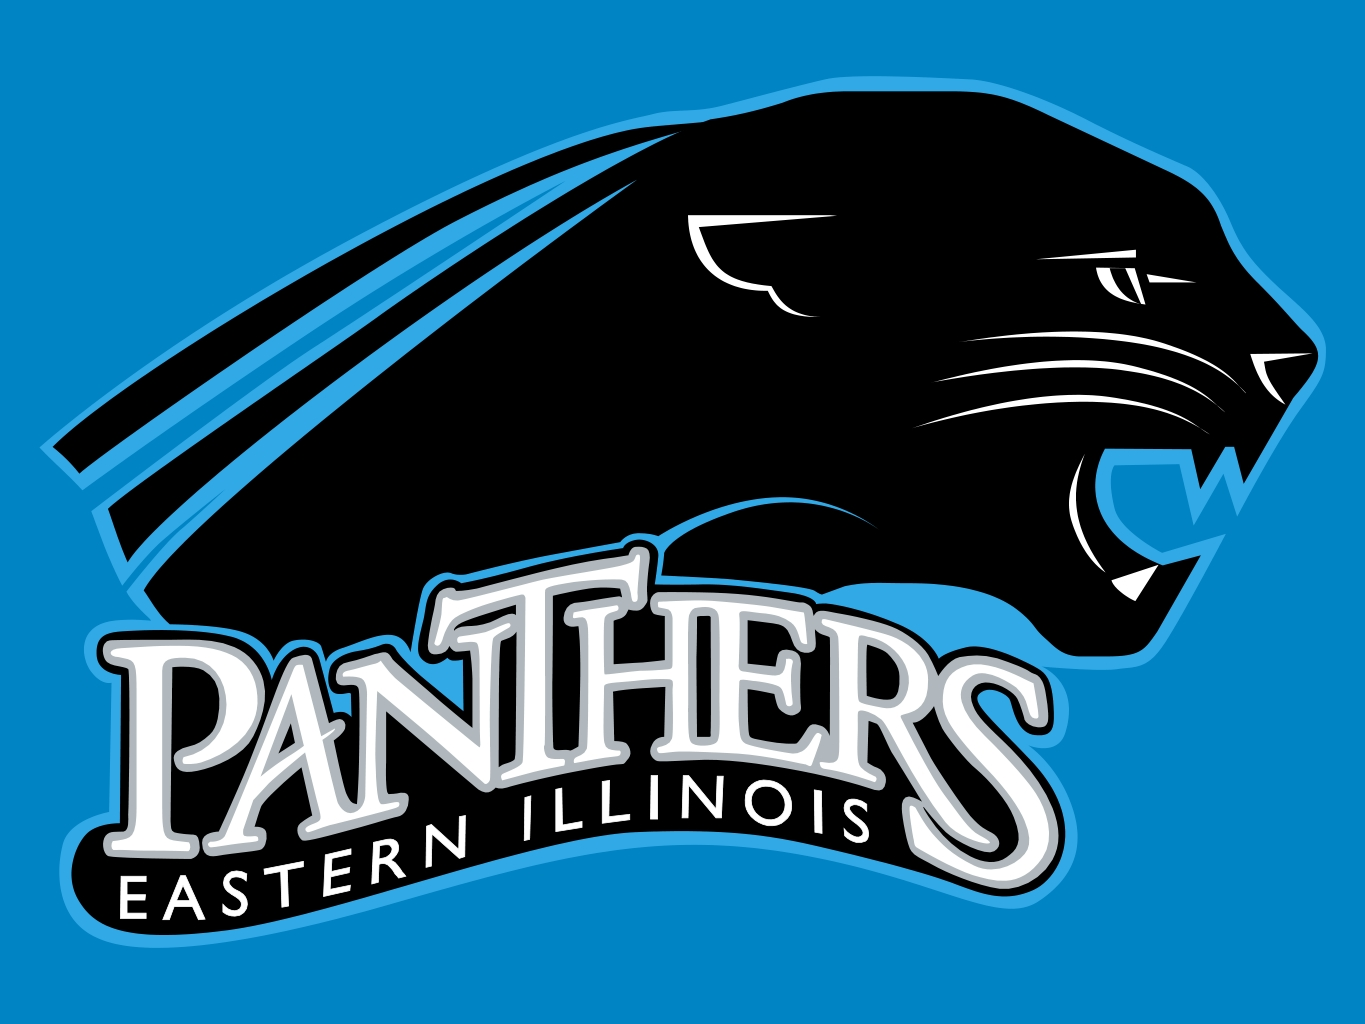 Pin panthers wallpaper carolina free computer wallpapers on